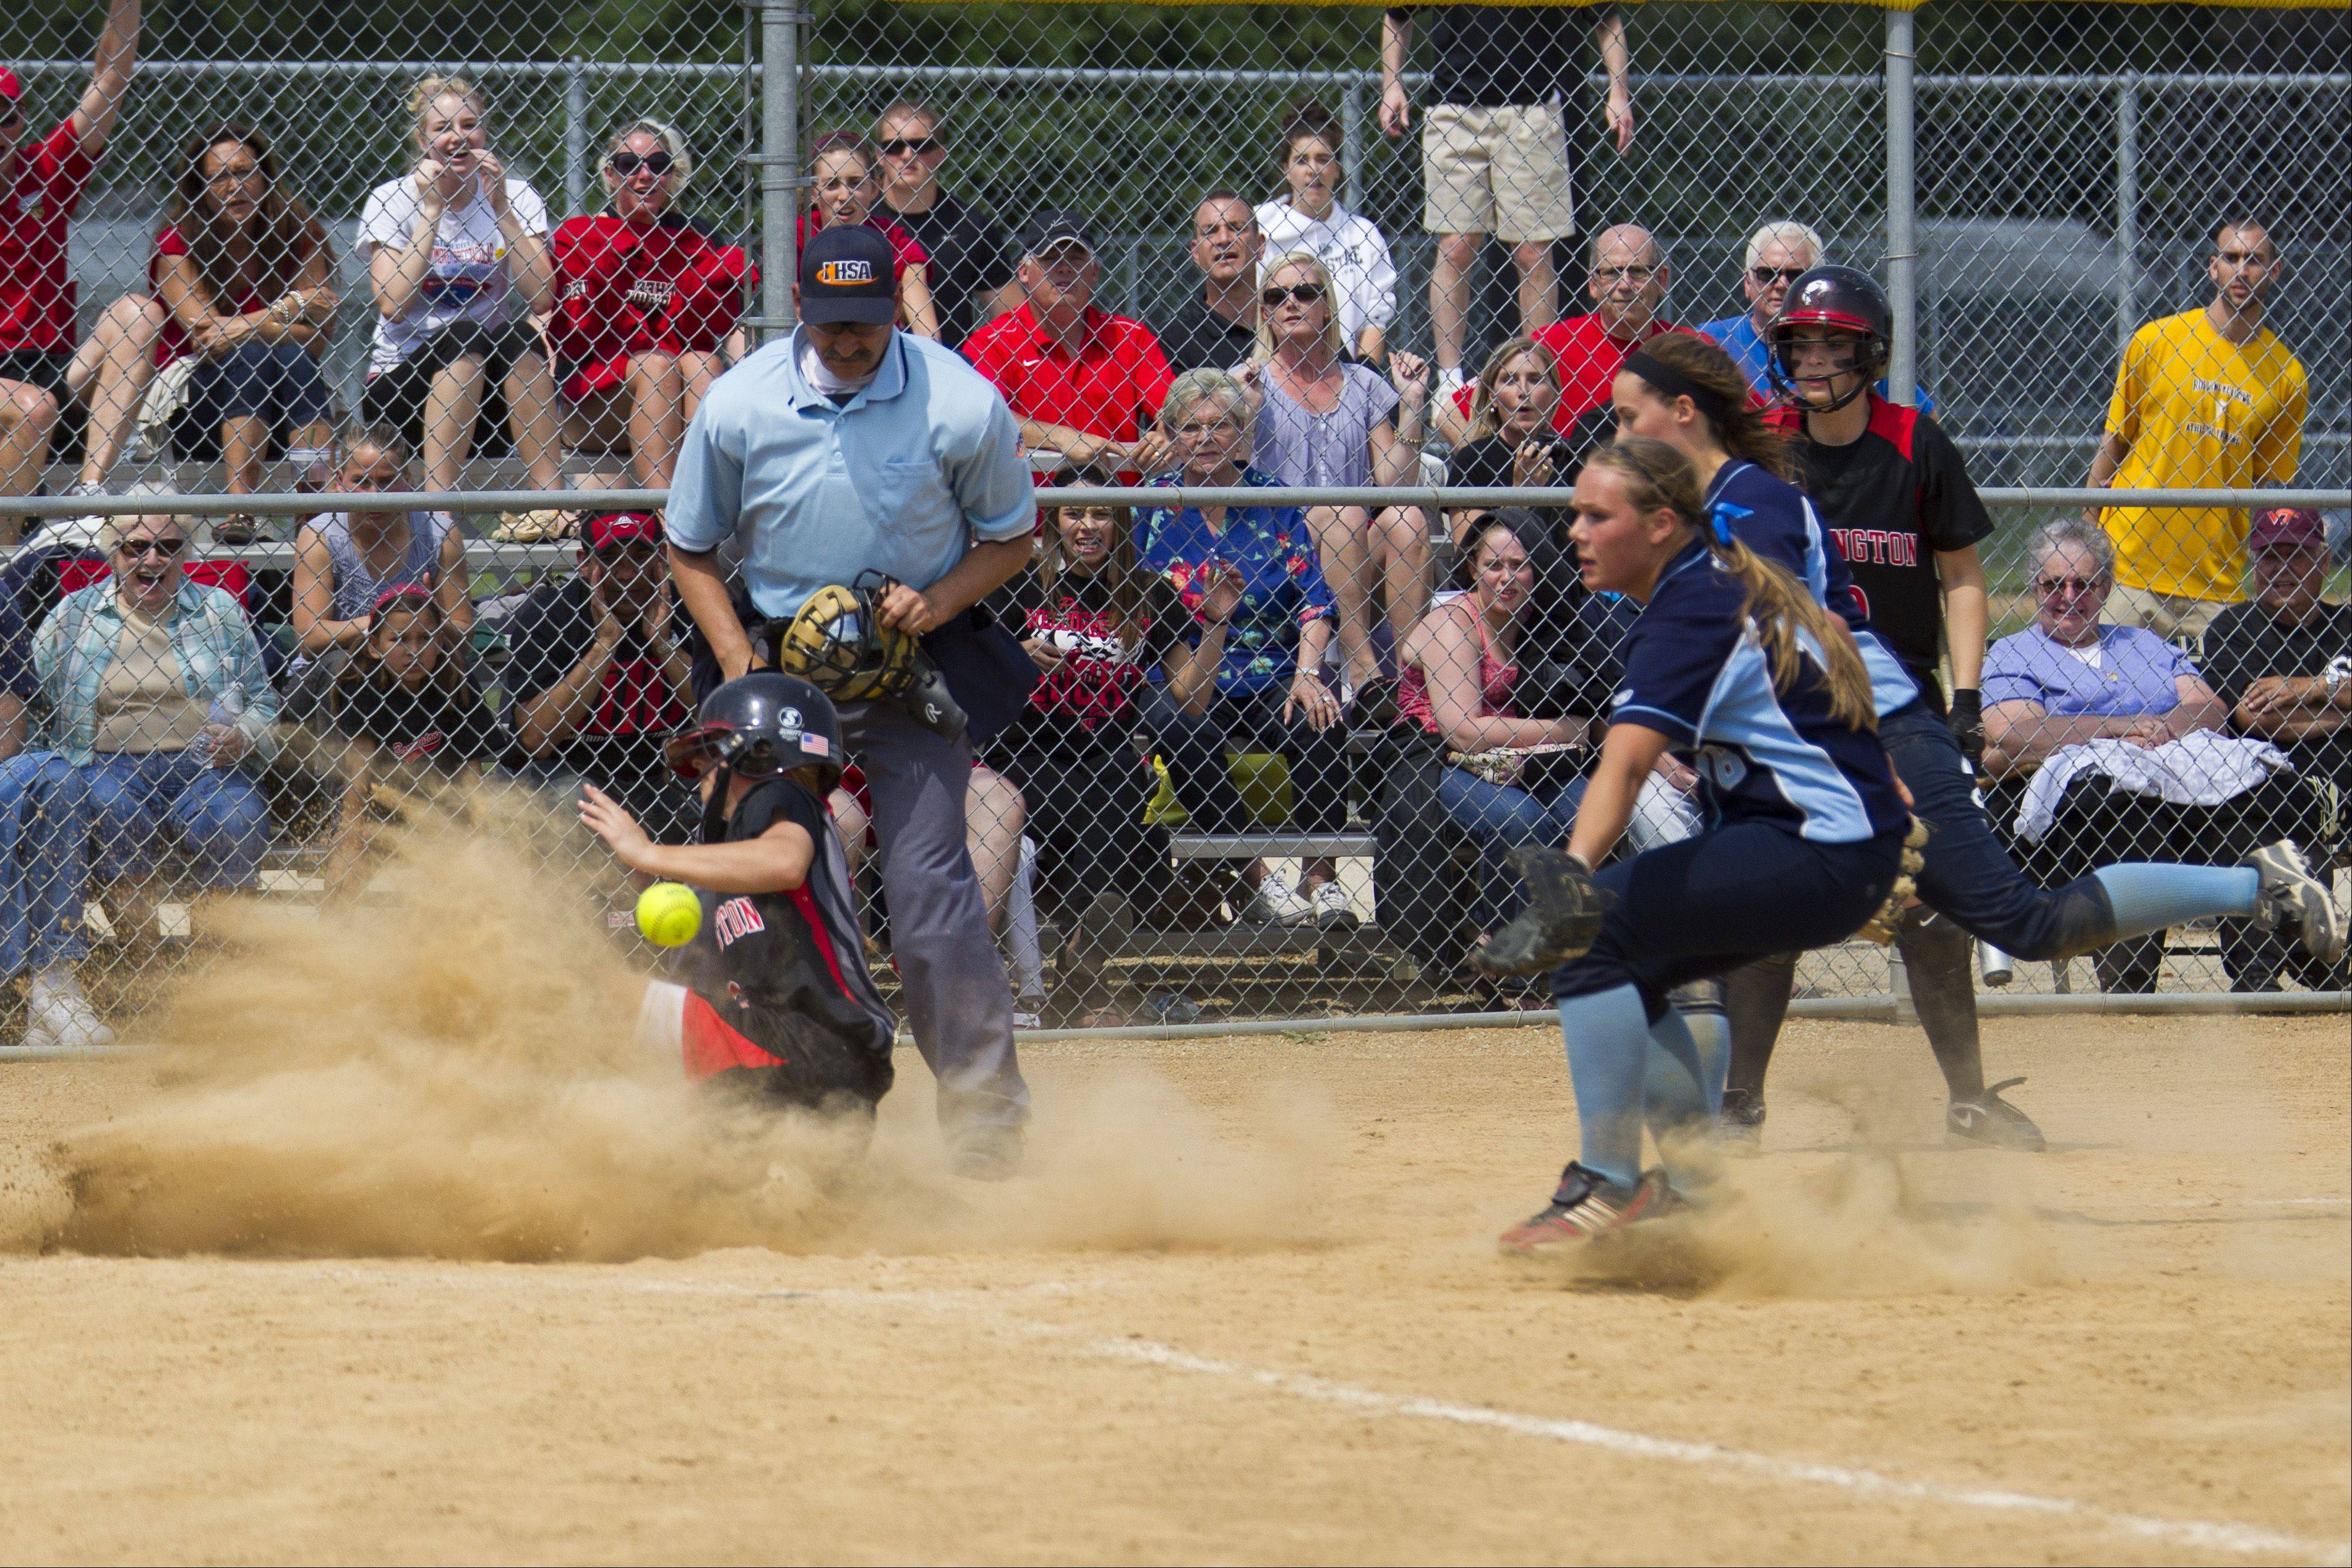 Barrington's Loren Krzysko scores the winning running against Prospect on a wild pitch in the eighth inning Saturday.